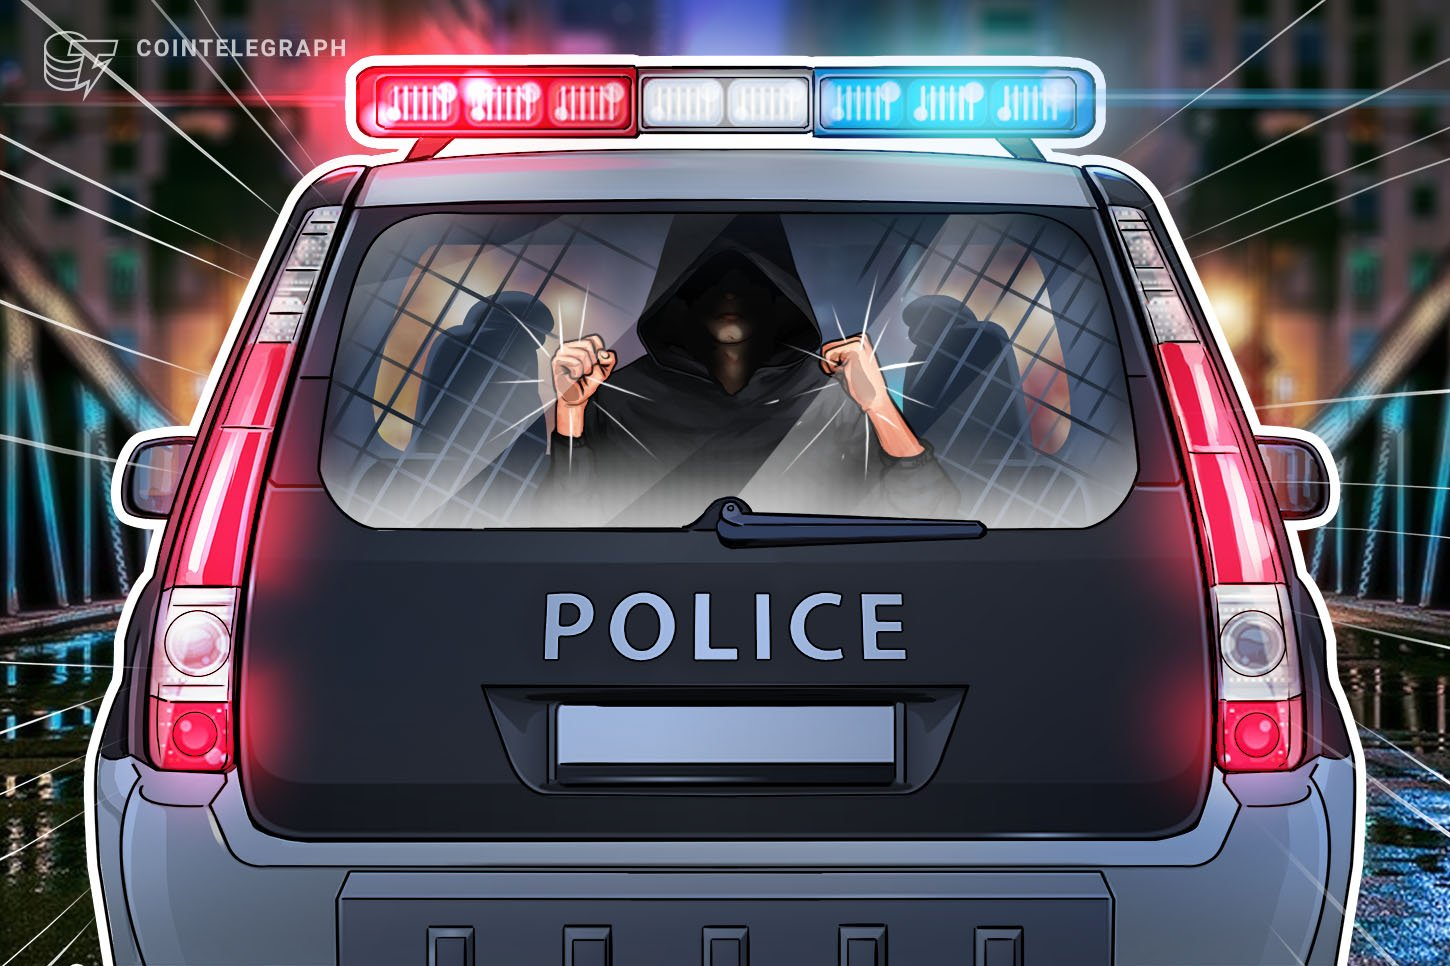 A criminal is extradited from Cyprus for allegedly stealing Bitcoin